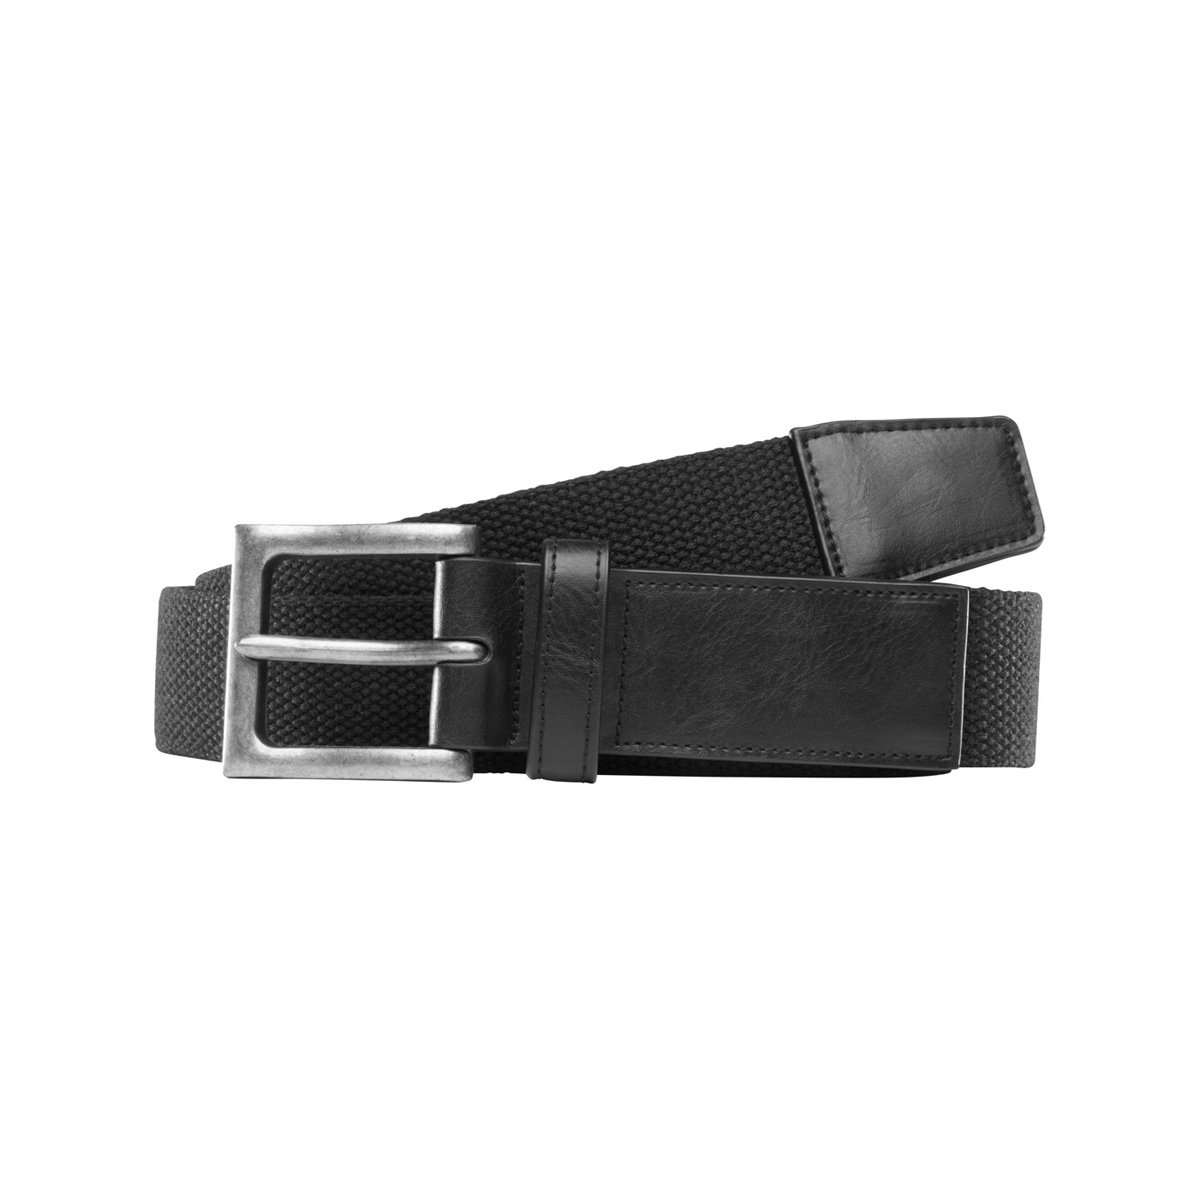 SHORTCUT BELT